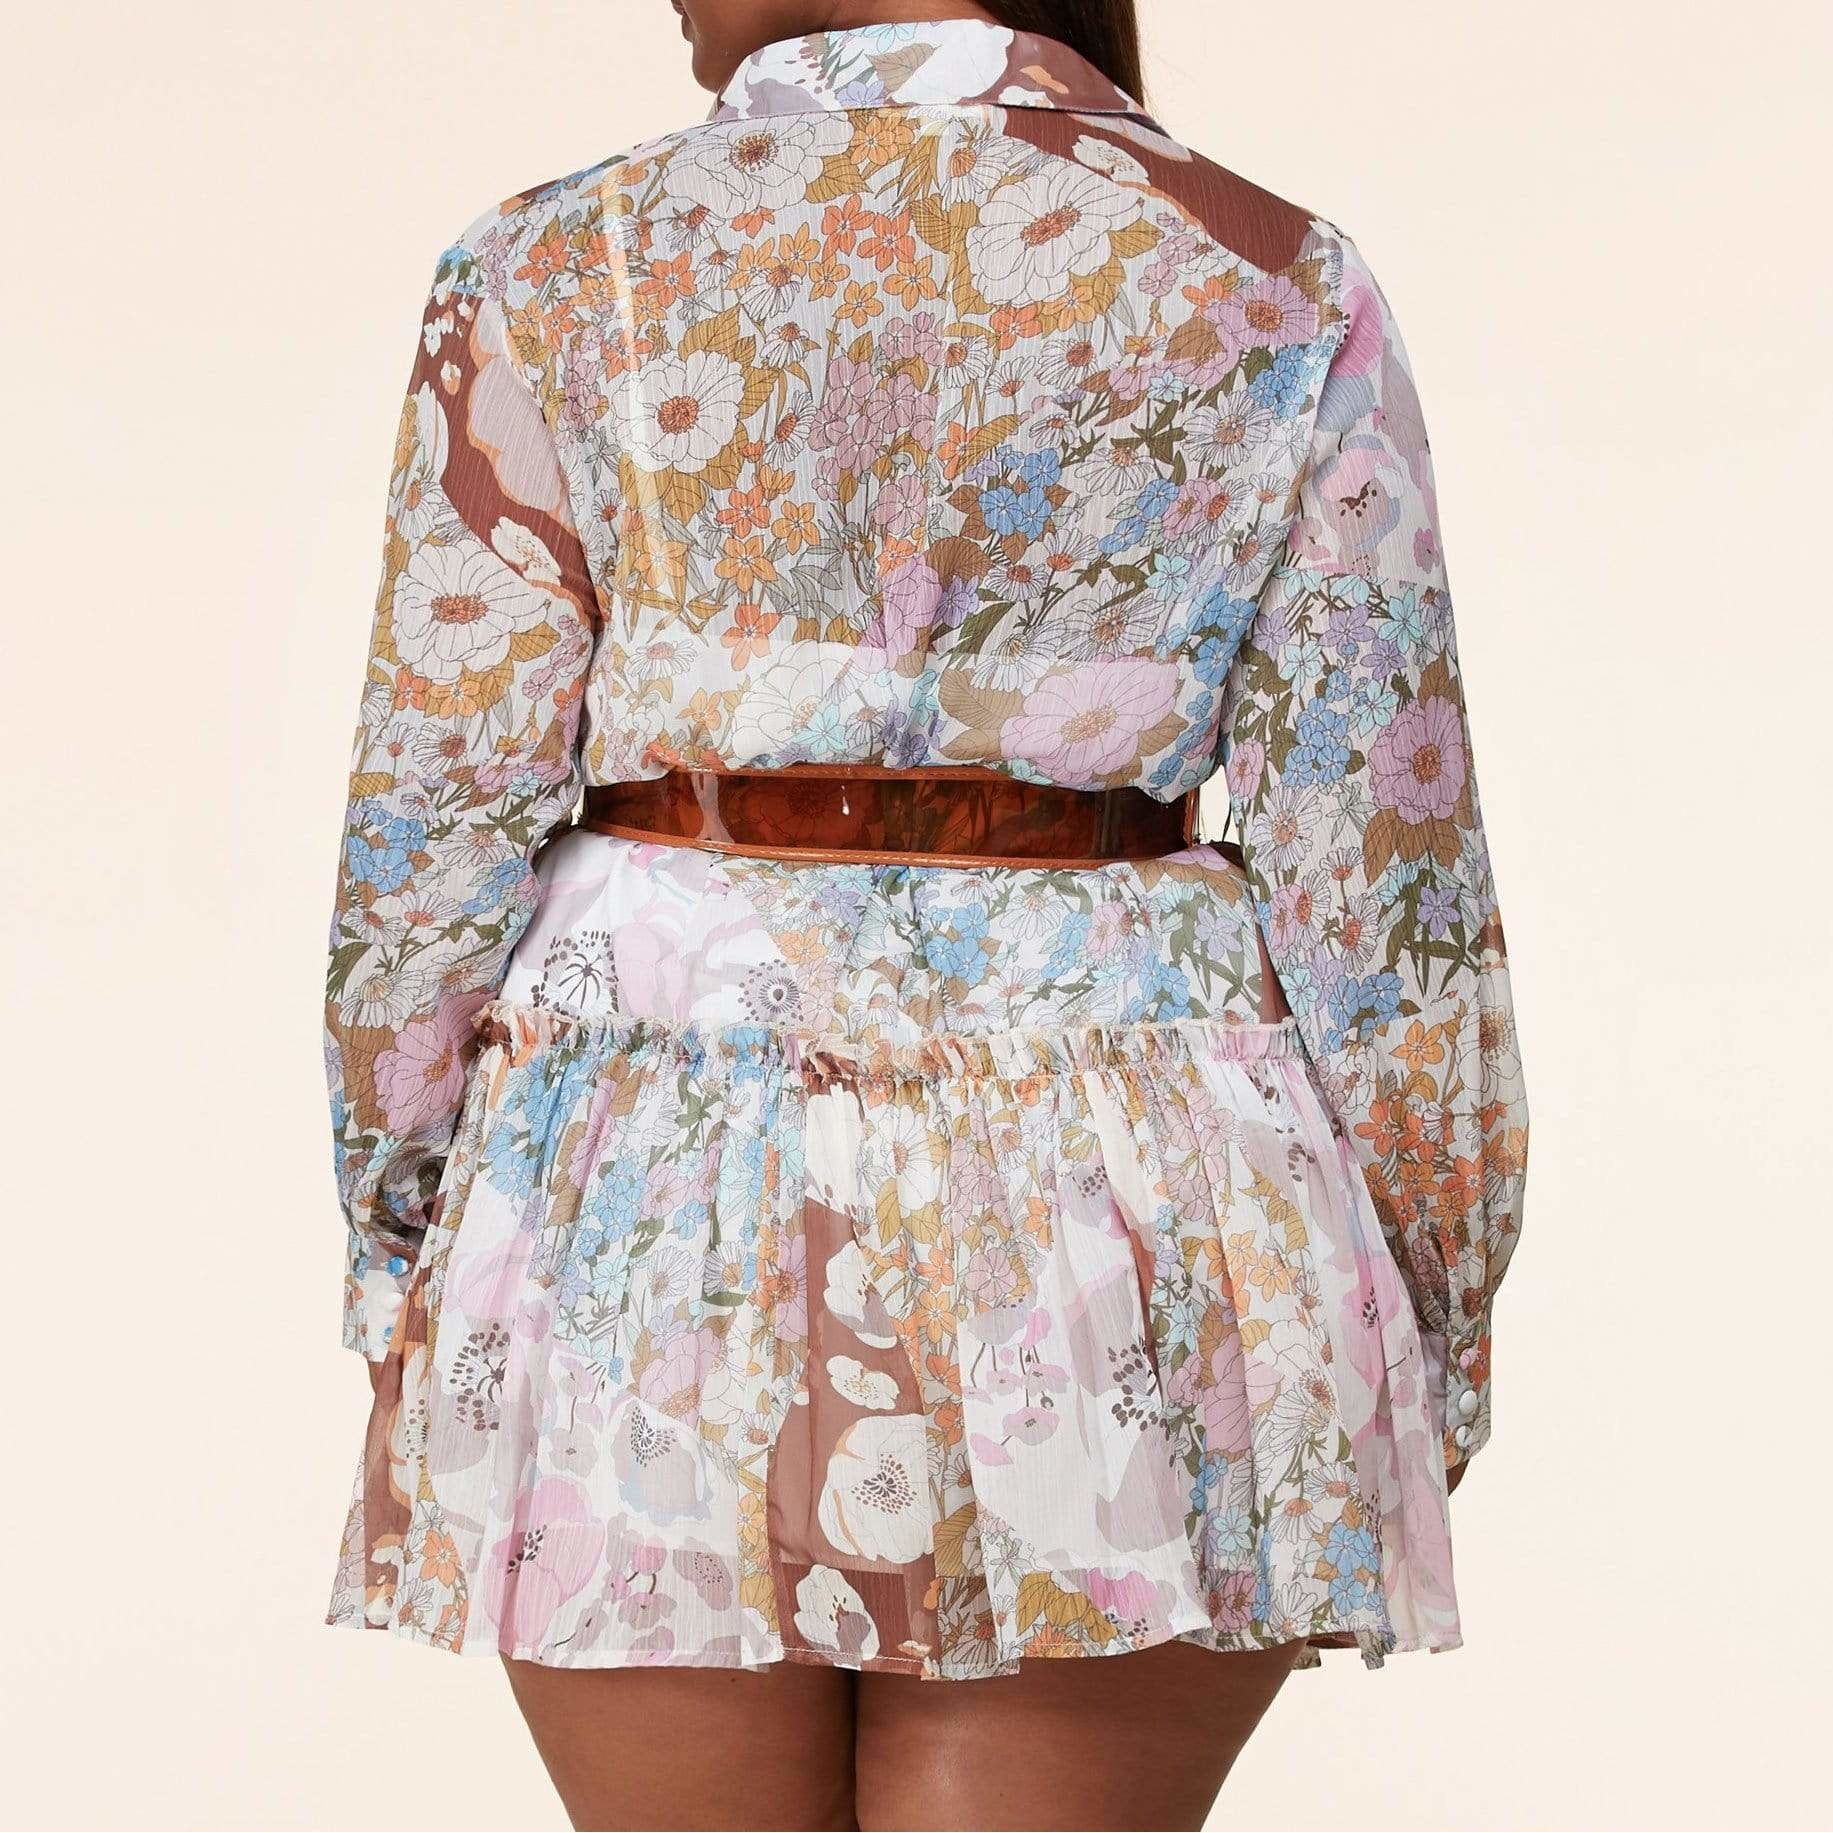 Posh Shoppe: Transitional Floral Print Drop-Waist Mini Dress Dress